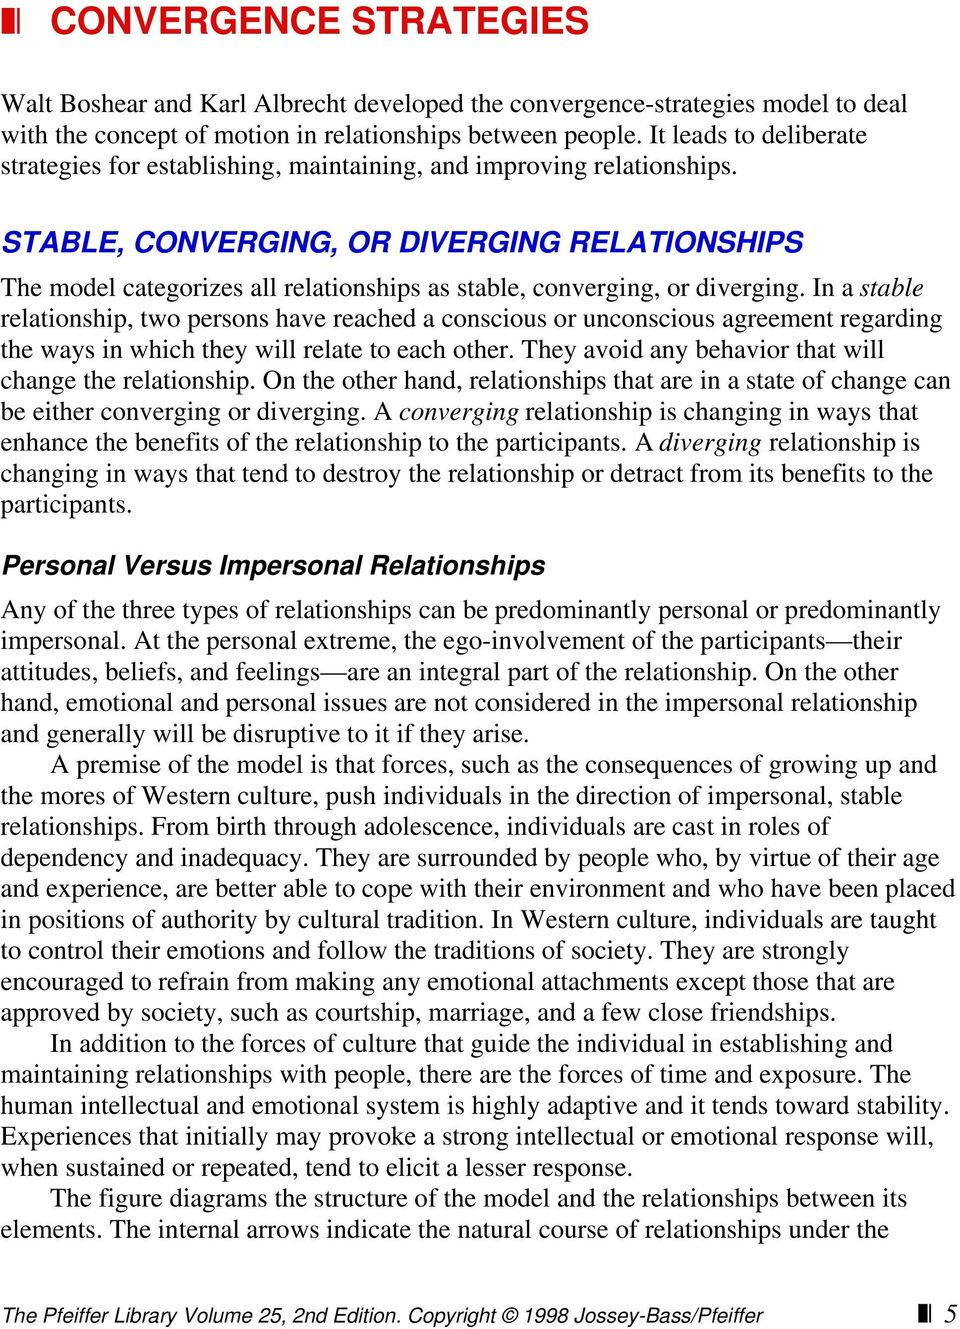 STABLE, CONVERGING, OR DIVERGING RELATIONSHIPS The model categorizes all relationships as stable, converging, or diverging.